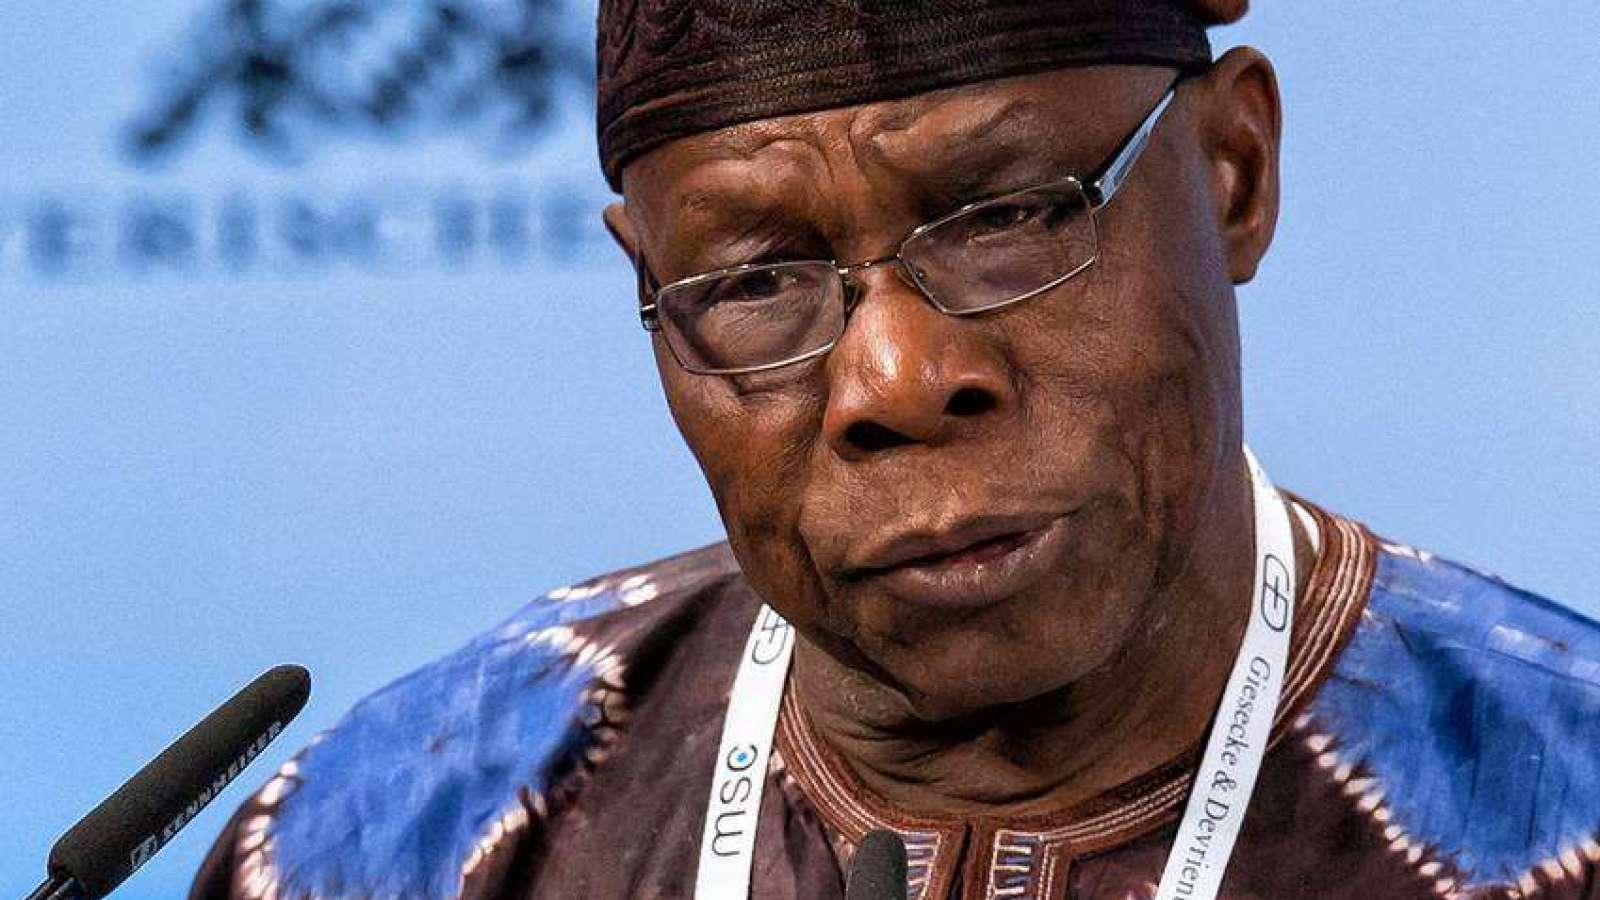 Obasanjo: Borrowing For Recurrent Expenditure Is Foolish